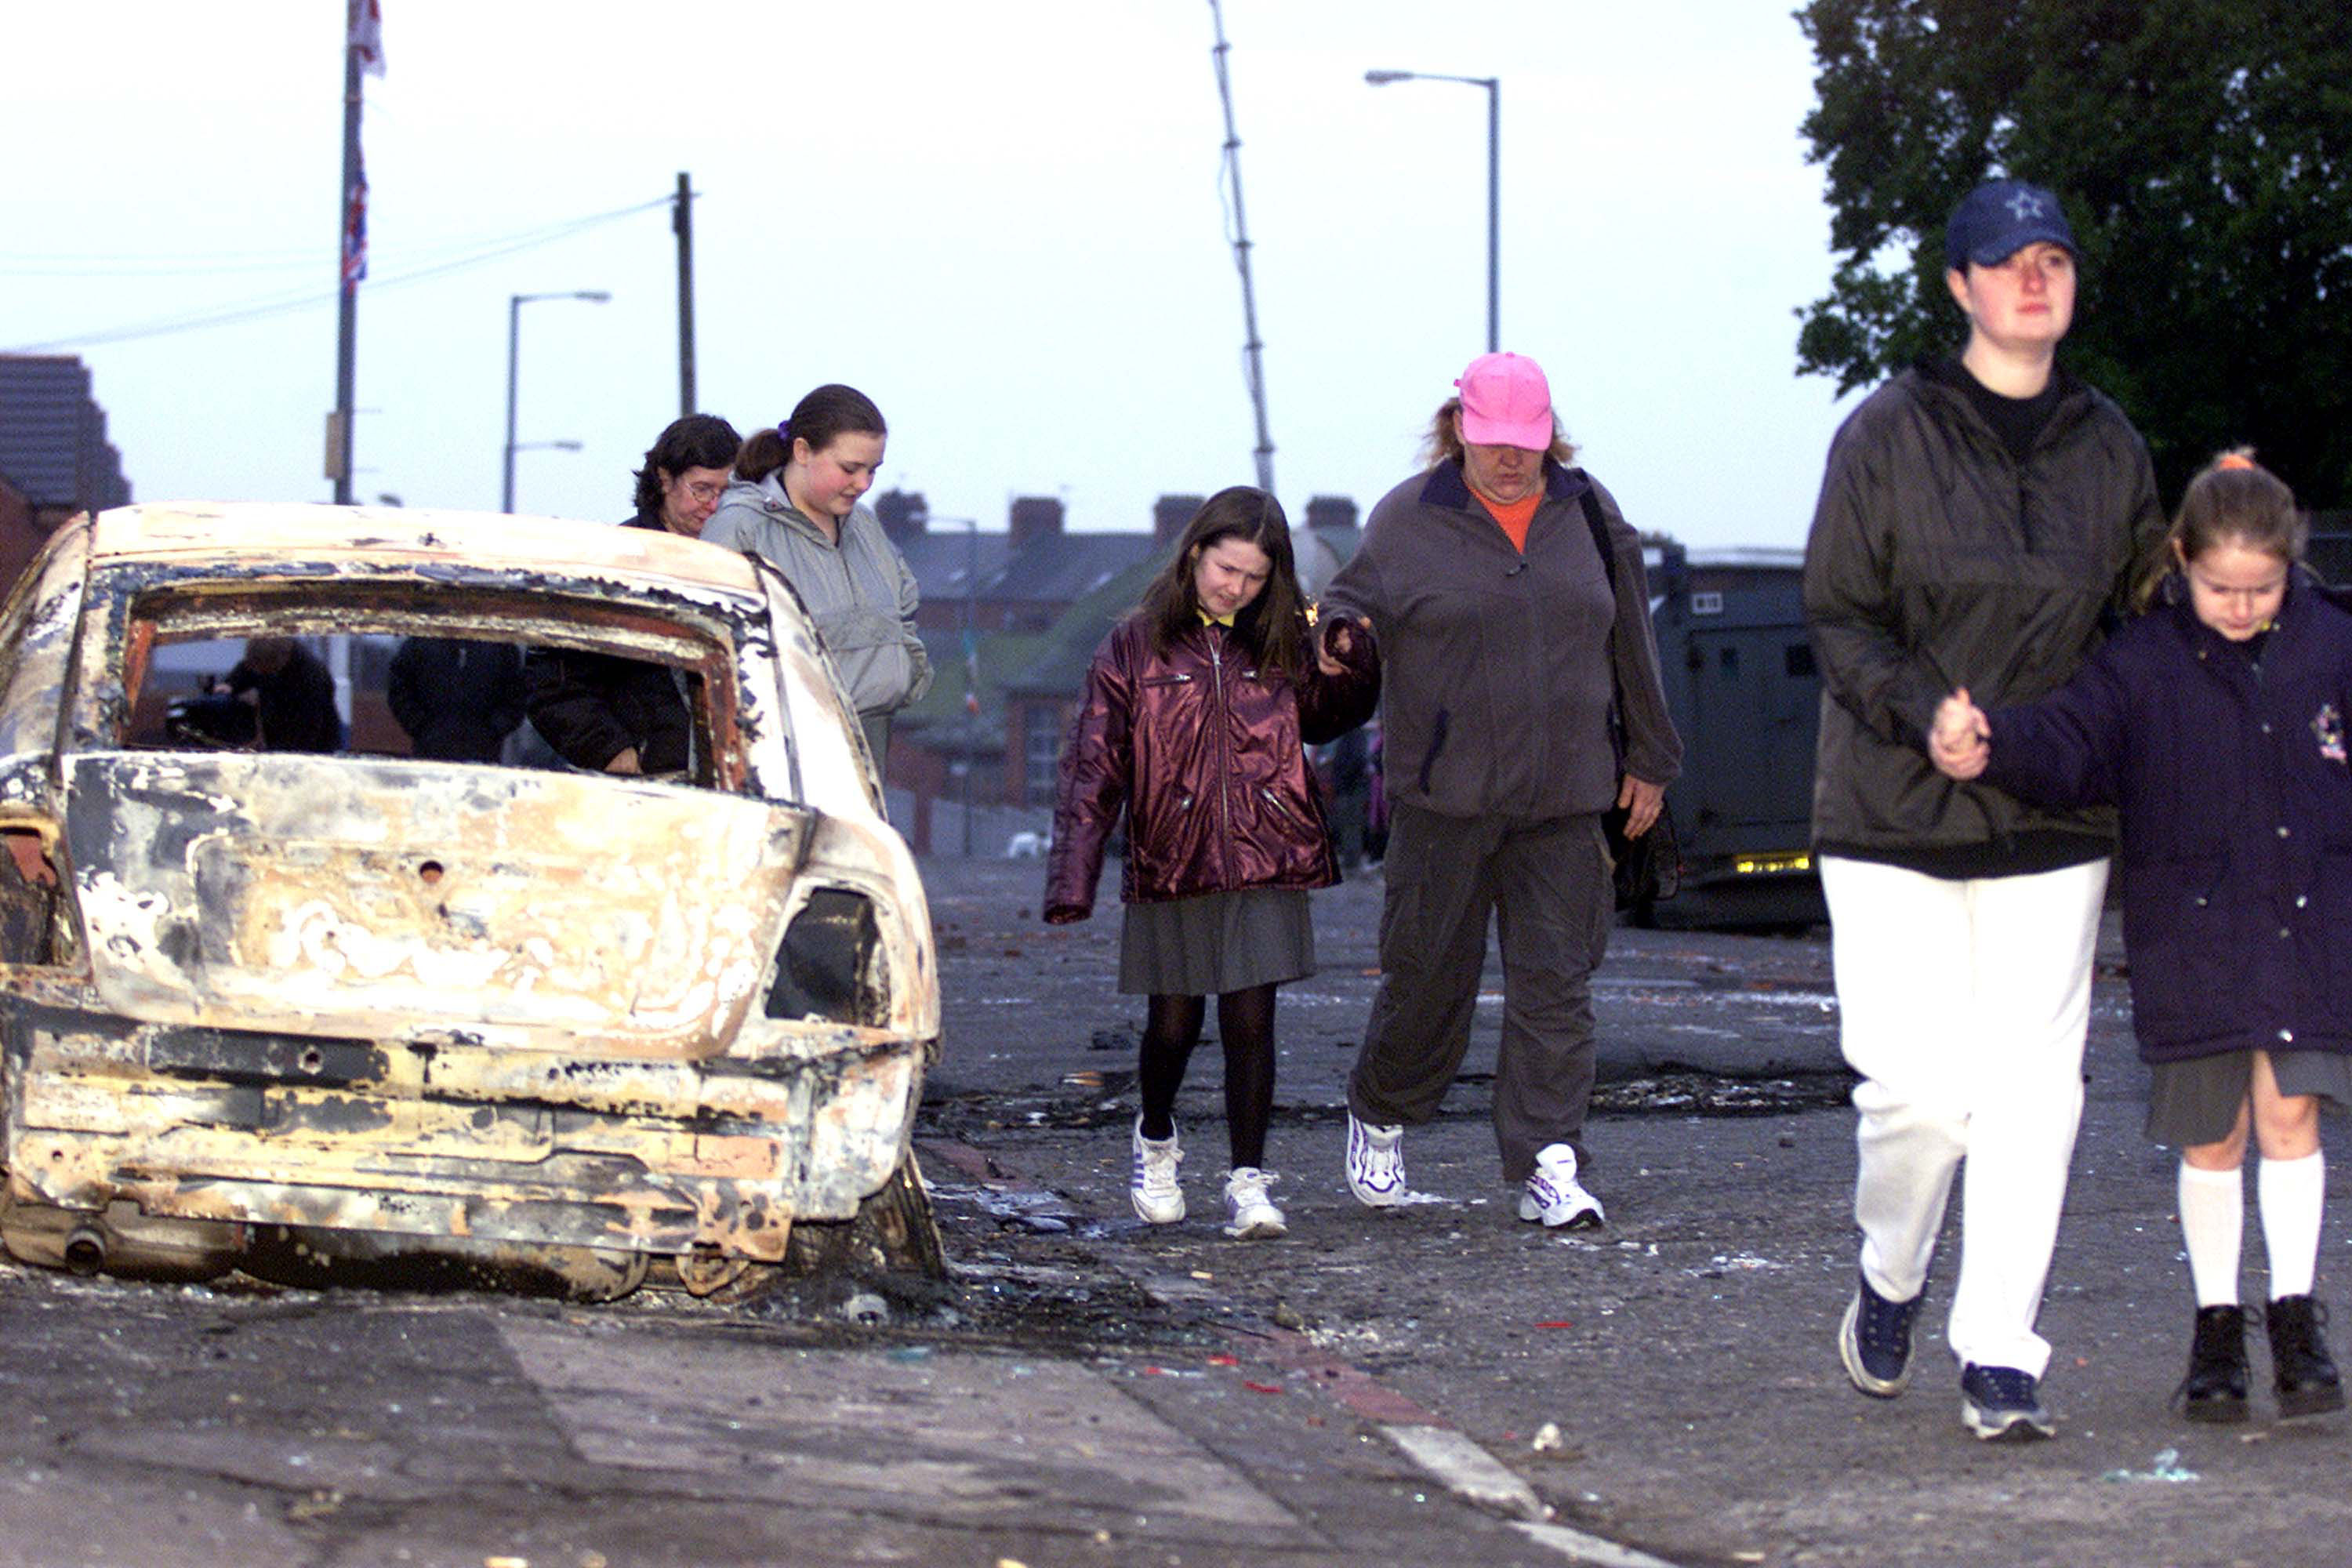 Local residents of the Glenbryn area in North Belfast walk past burnt-out remains of an armored police car following overnight rioting between Nationalists and Loyalists crowds January 10, 2002 in Belfast, Northern Ireland. Rioting erupted as Catholic parents picked up their children from the Holy Cross girls'' primary school.